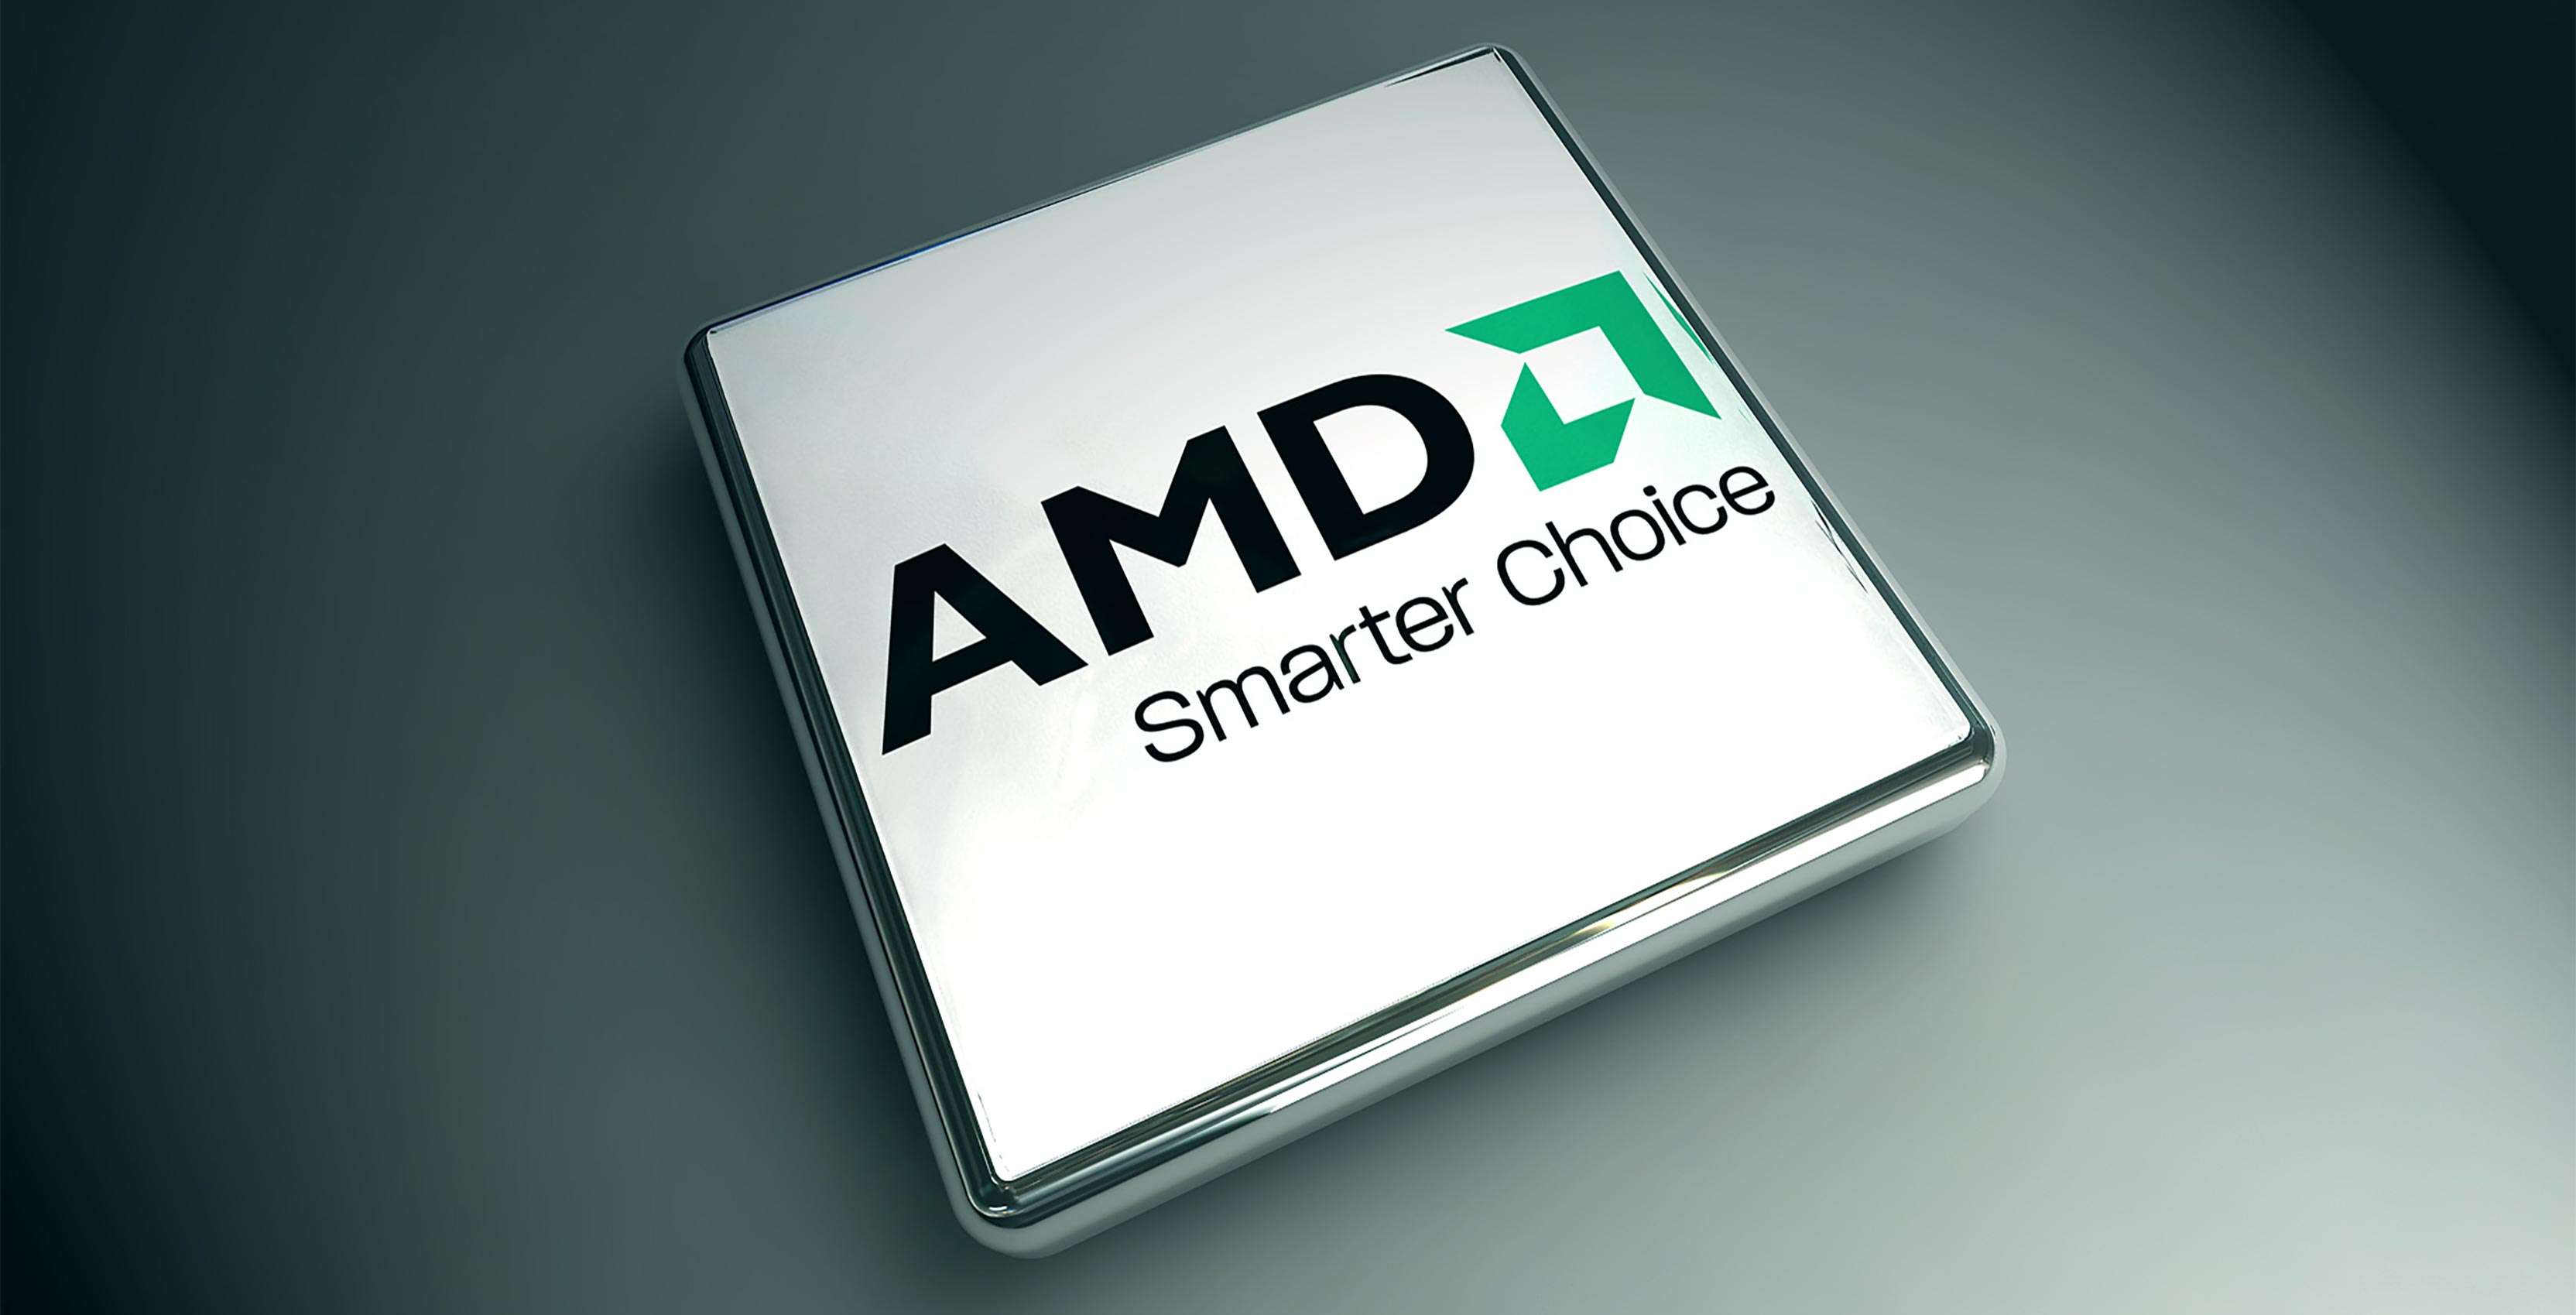 AMD stock image